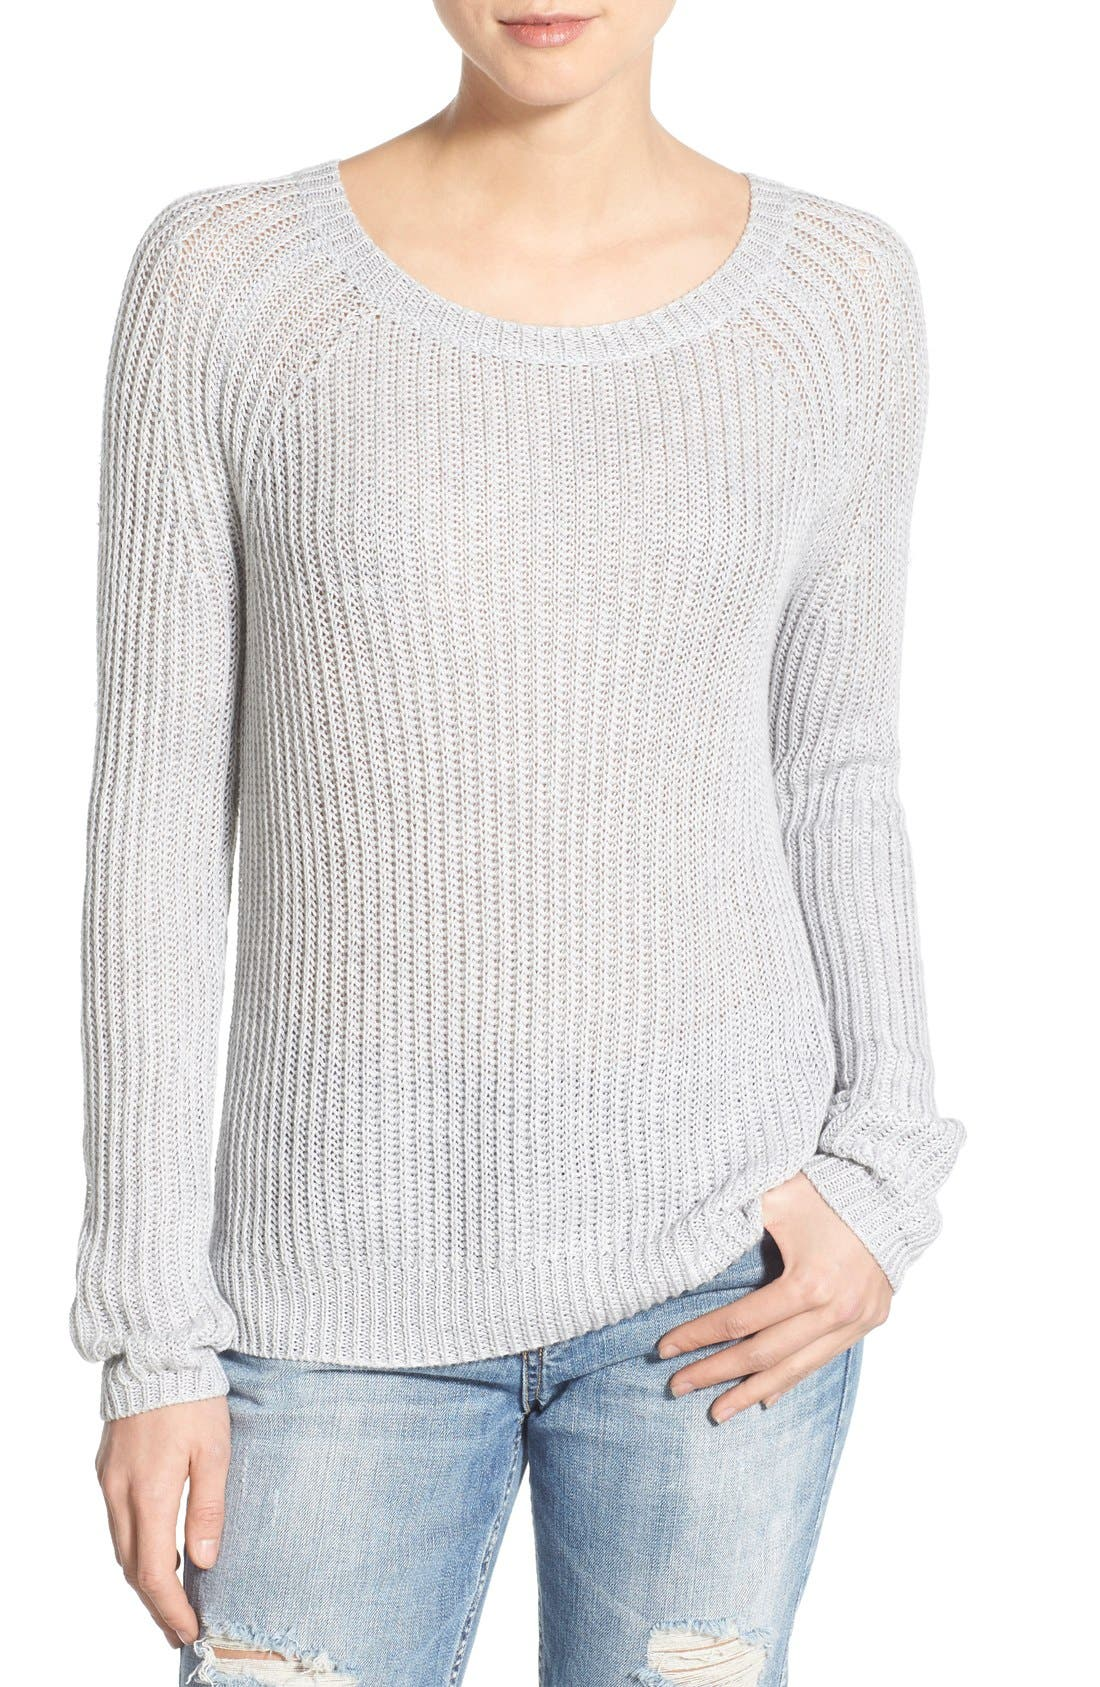 Alternate Image 1 Selected - Rails 'Willow' Knit Pullover